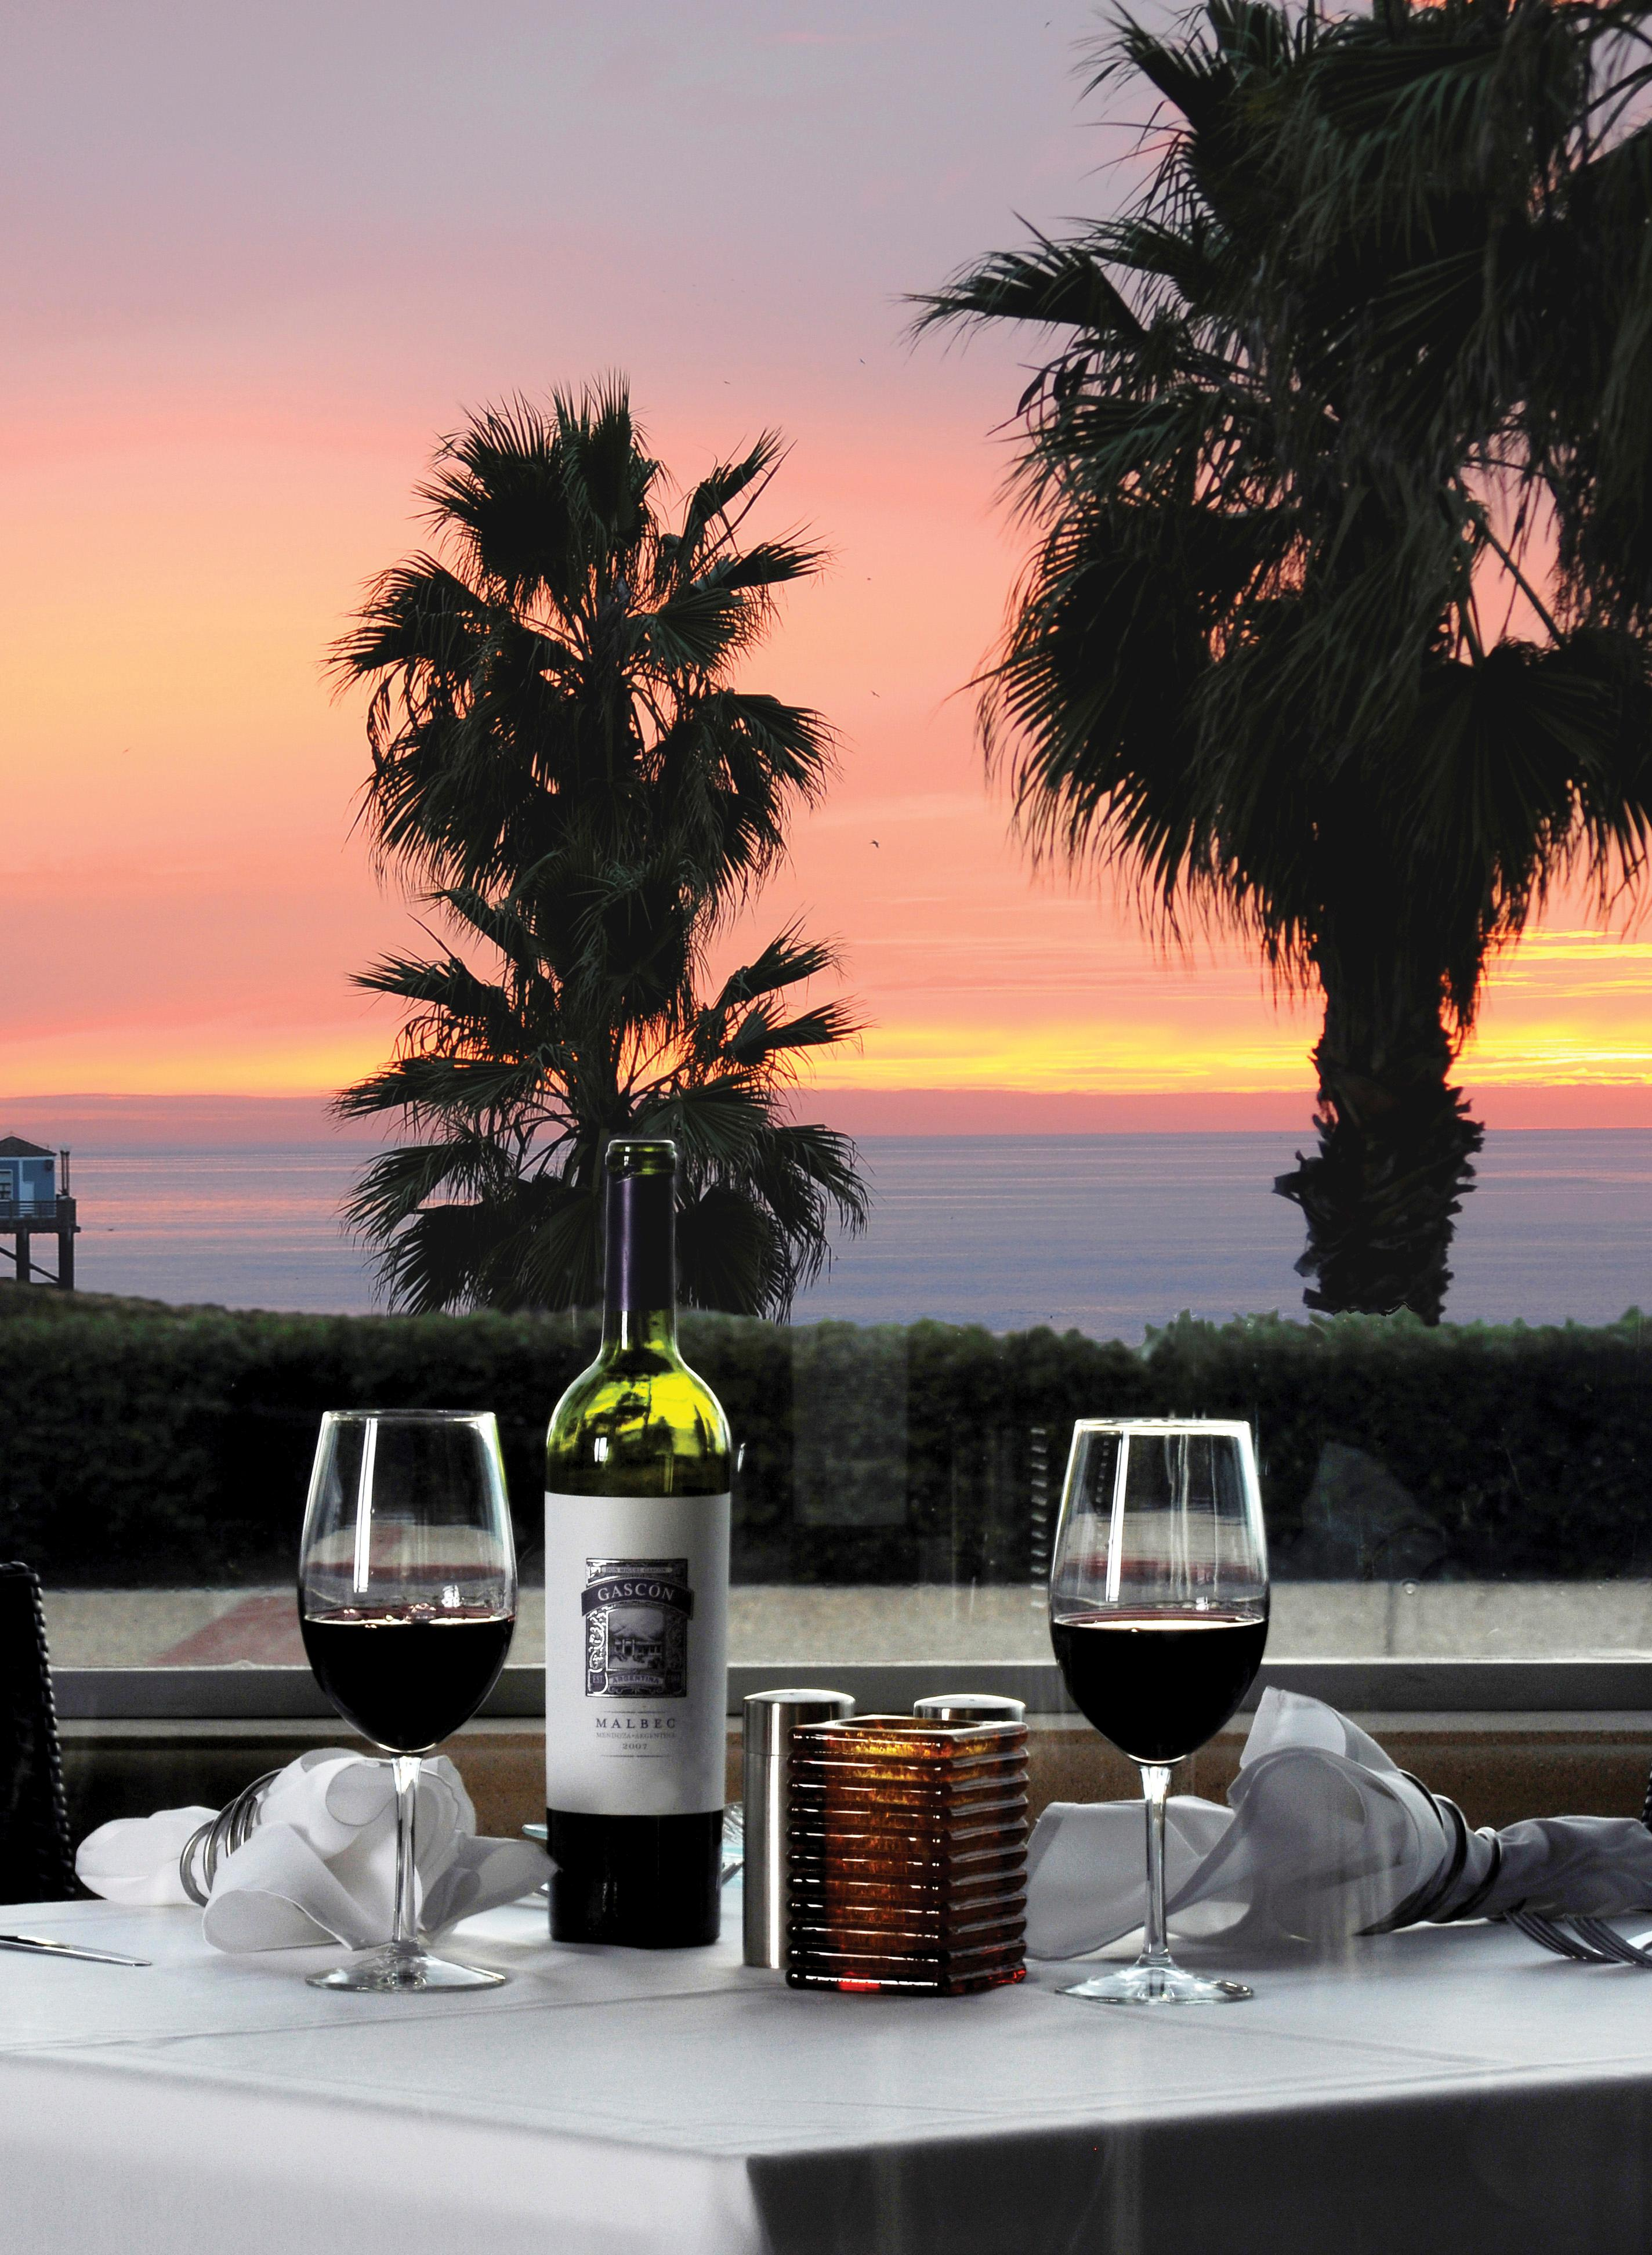 333 Paficic's classic Surf-n-Turf offerings come with a magificent sunset view.